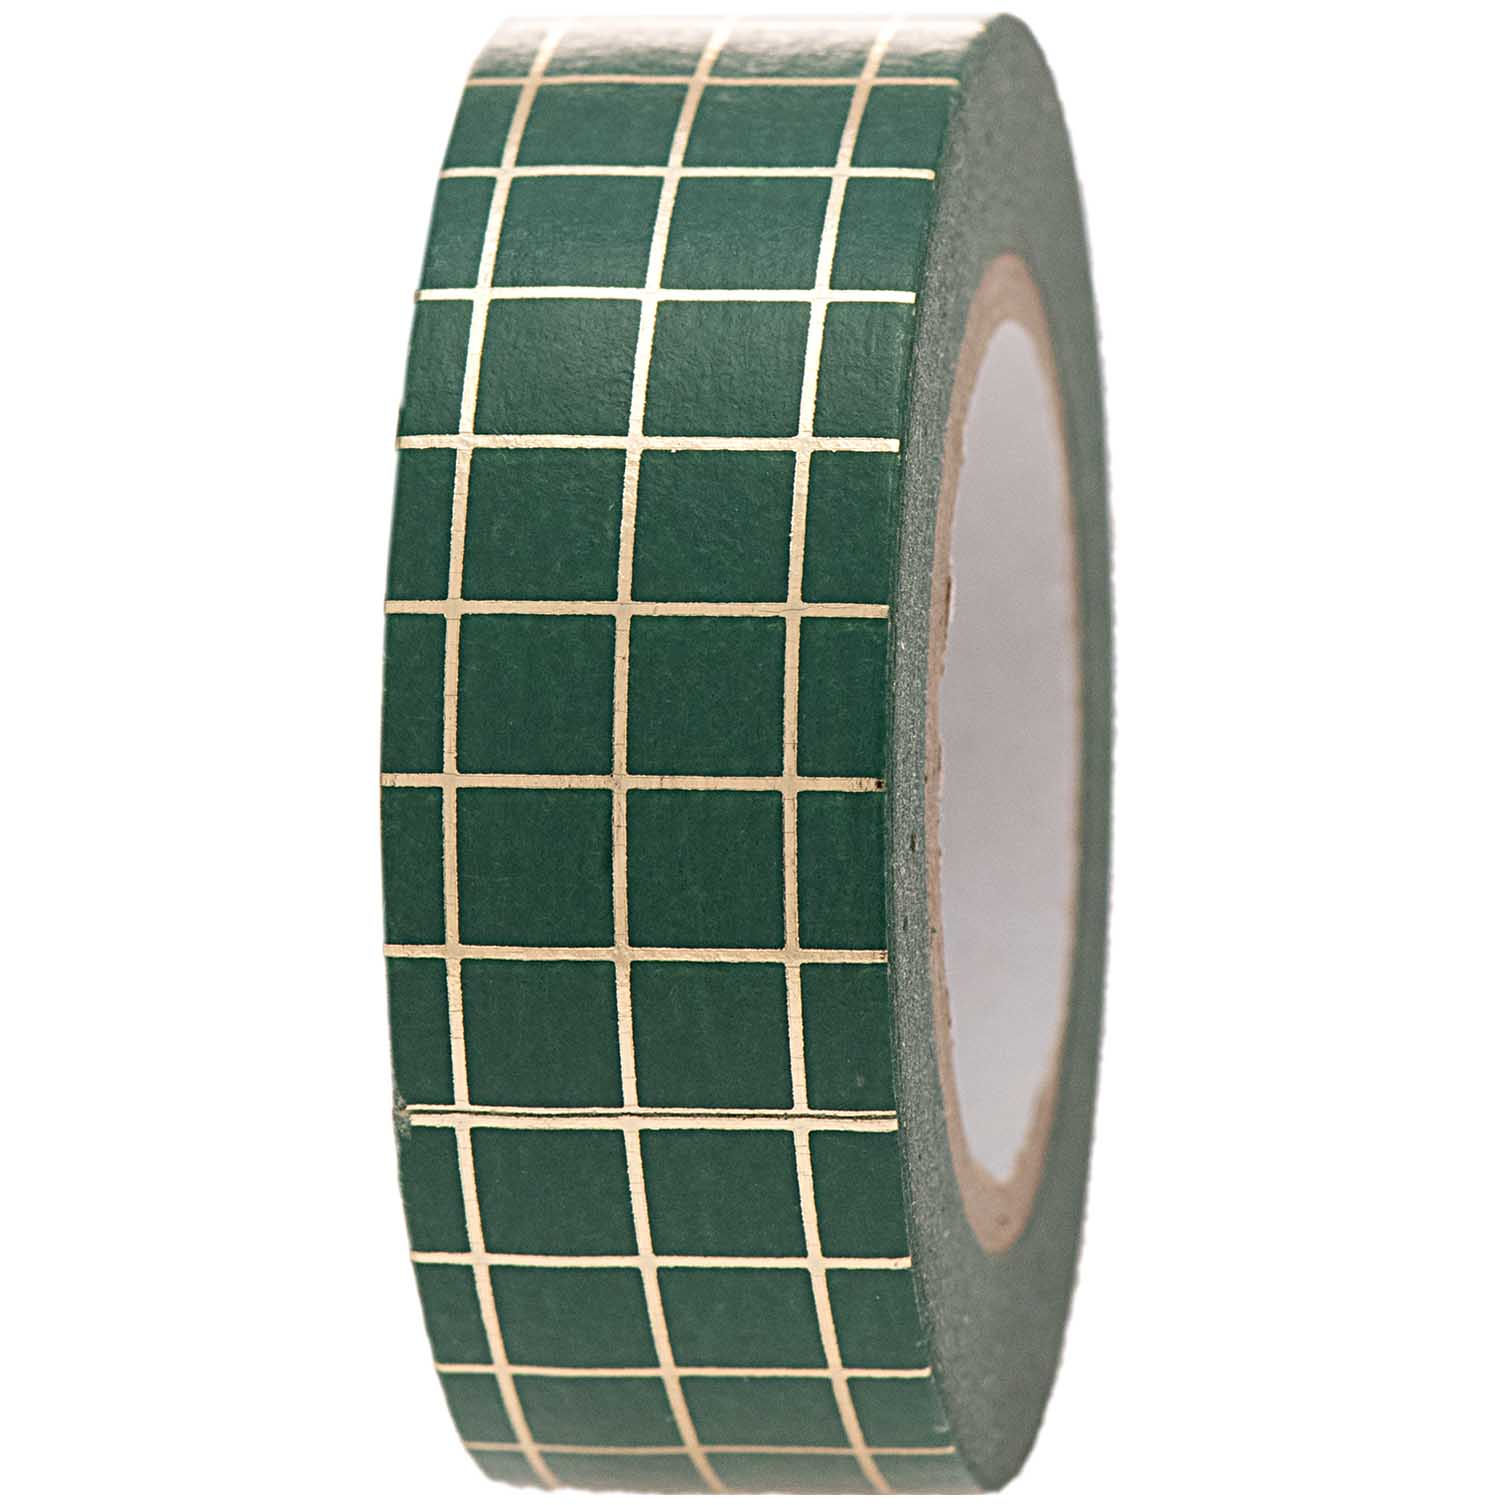 Paper Poetry Washi Tape - Christmas is in the air - Groen/goud ruitjes